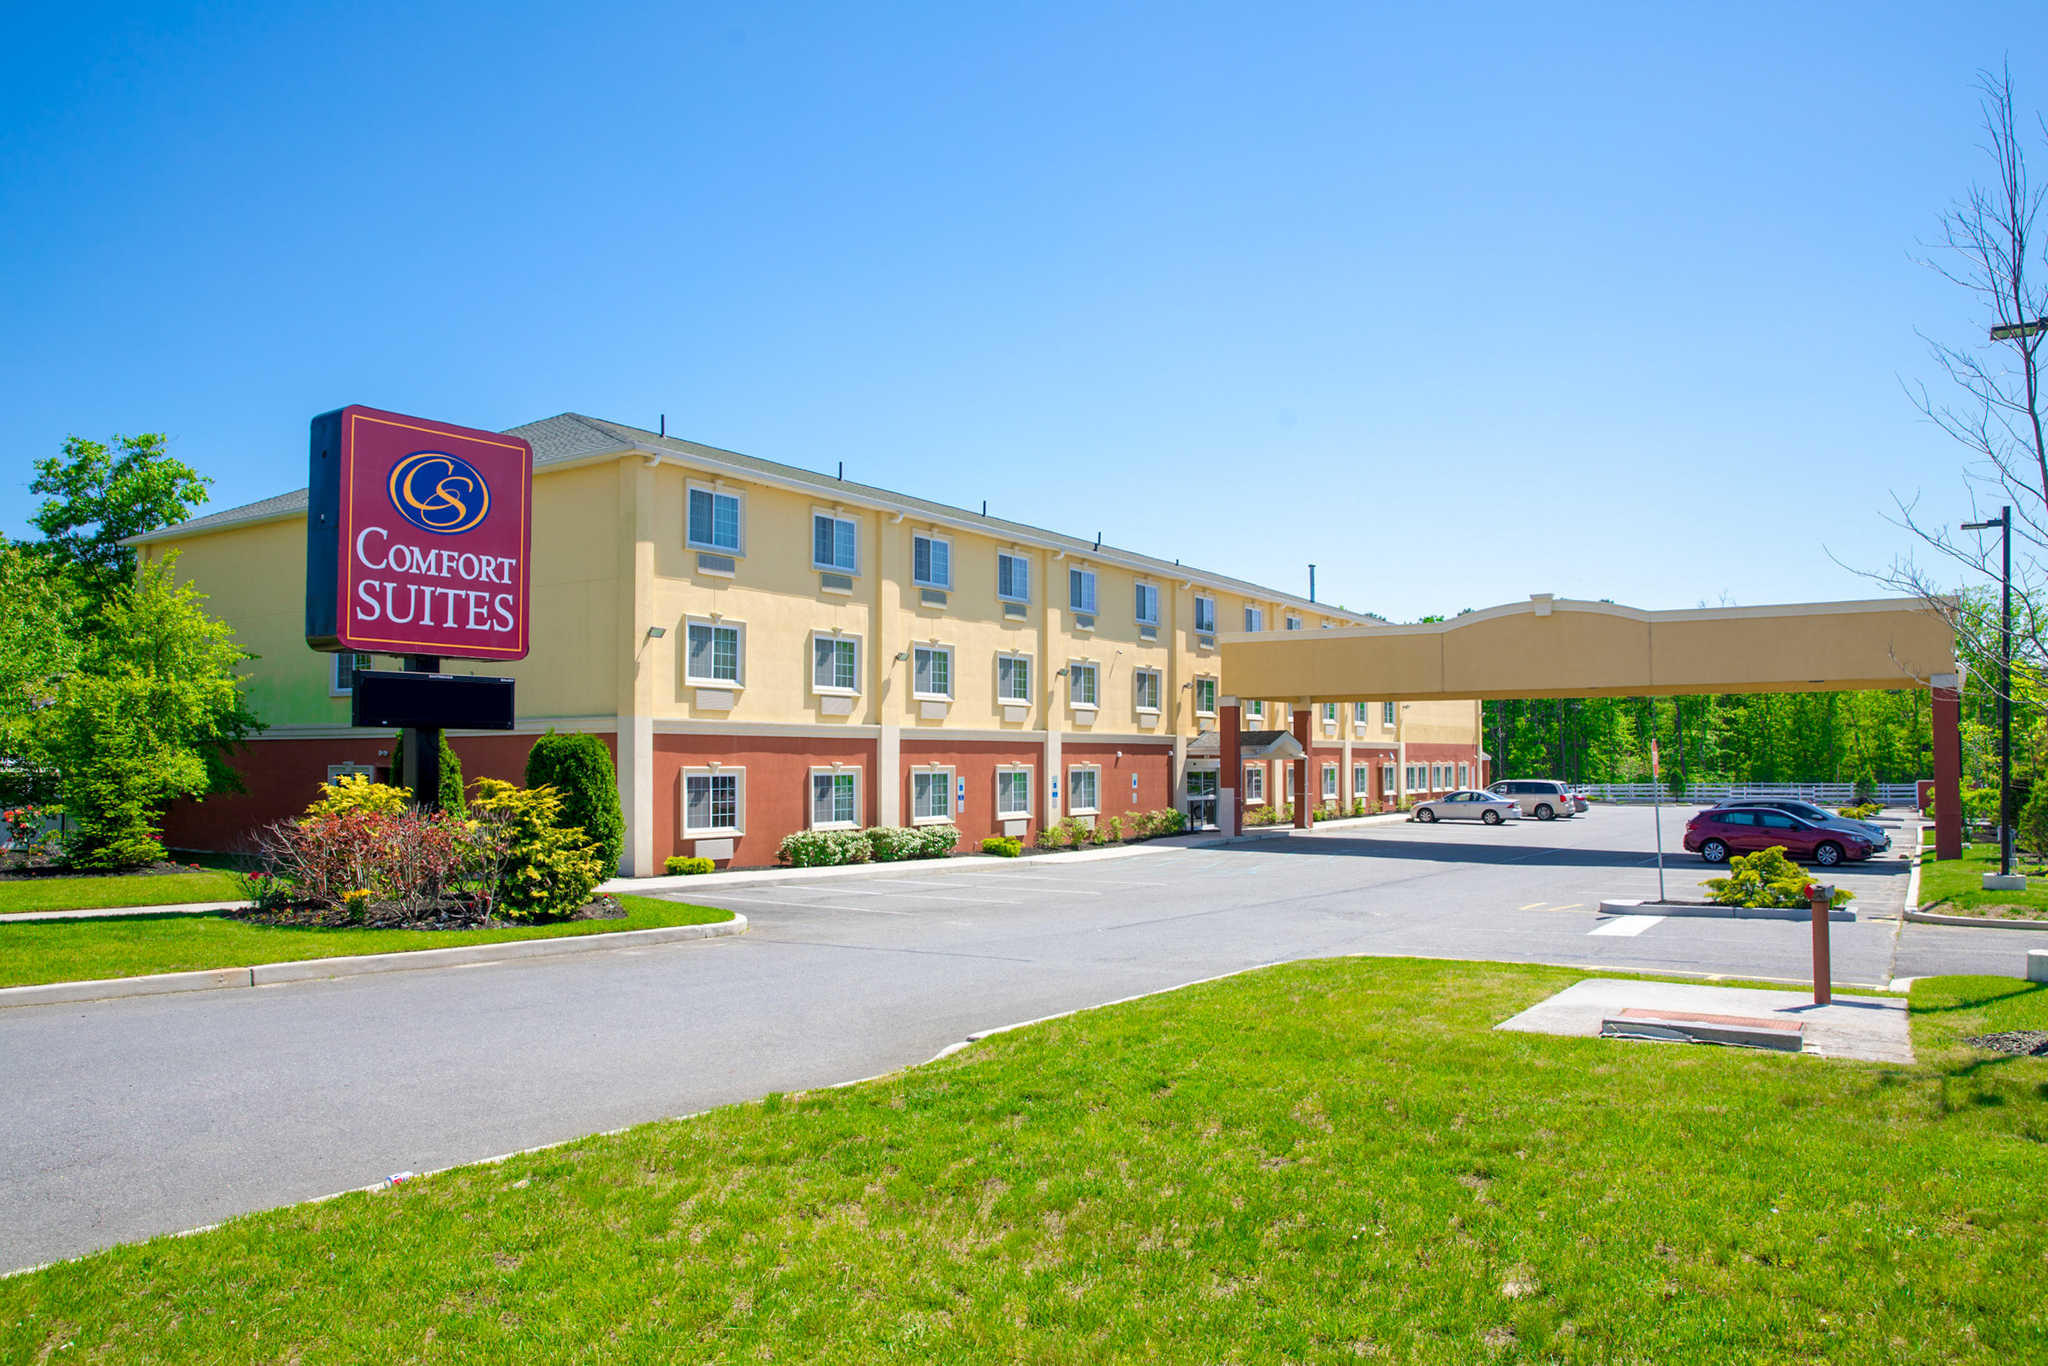 A motel is a hotel designed for motorists and usually has a parking area for motor narmaformcap.tkng dictionaries after World War II, the word motel, coined as a portmanteau contraction of